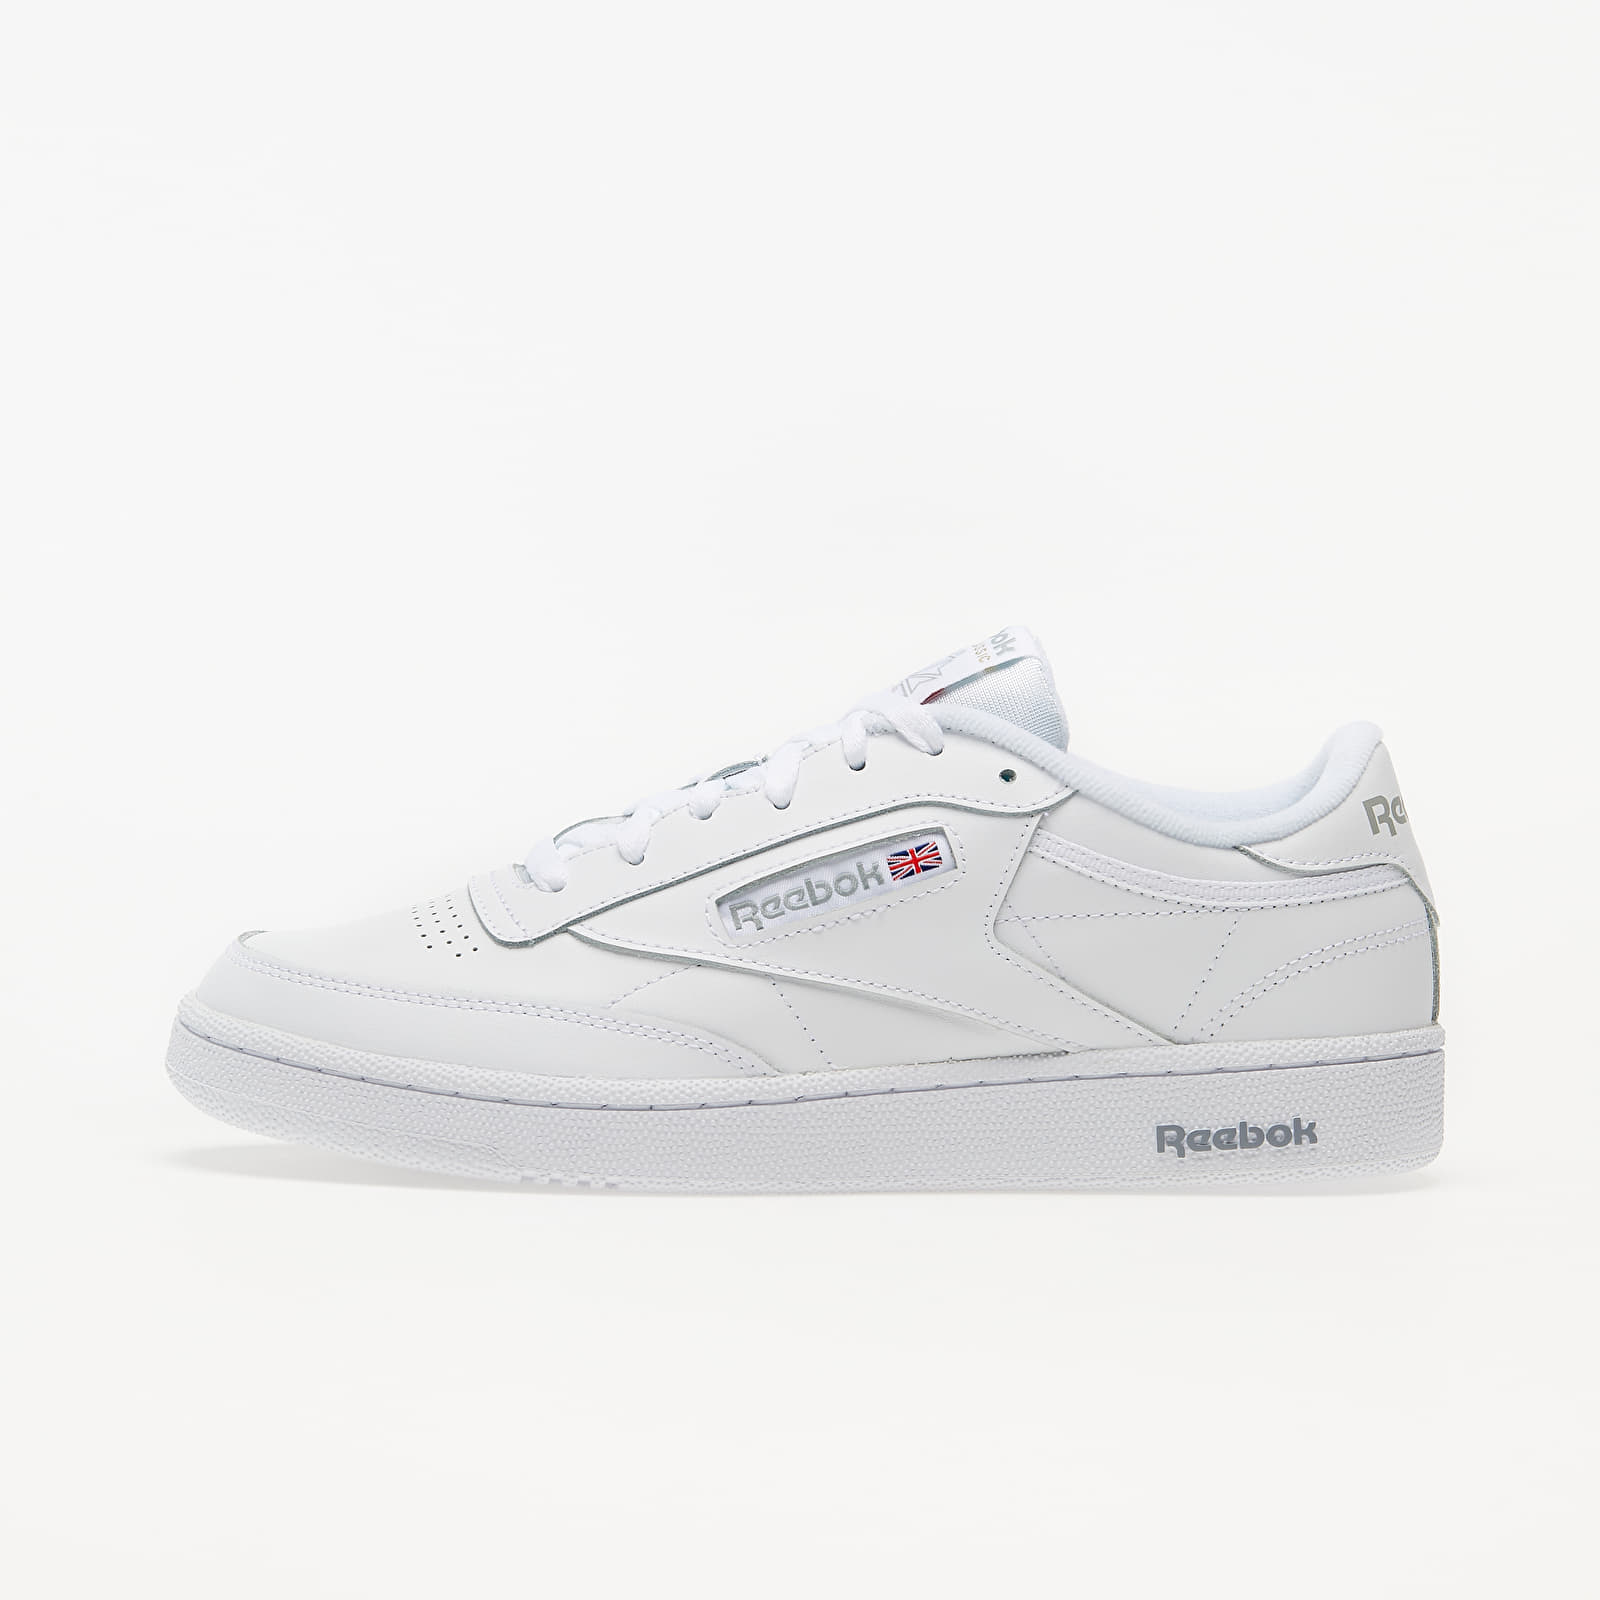 Férfi cipők Reebok Club C 85 White/ Sheer Grey